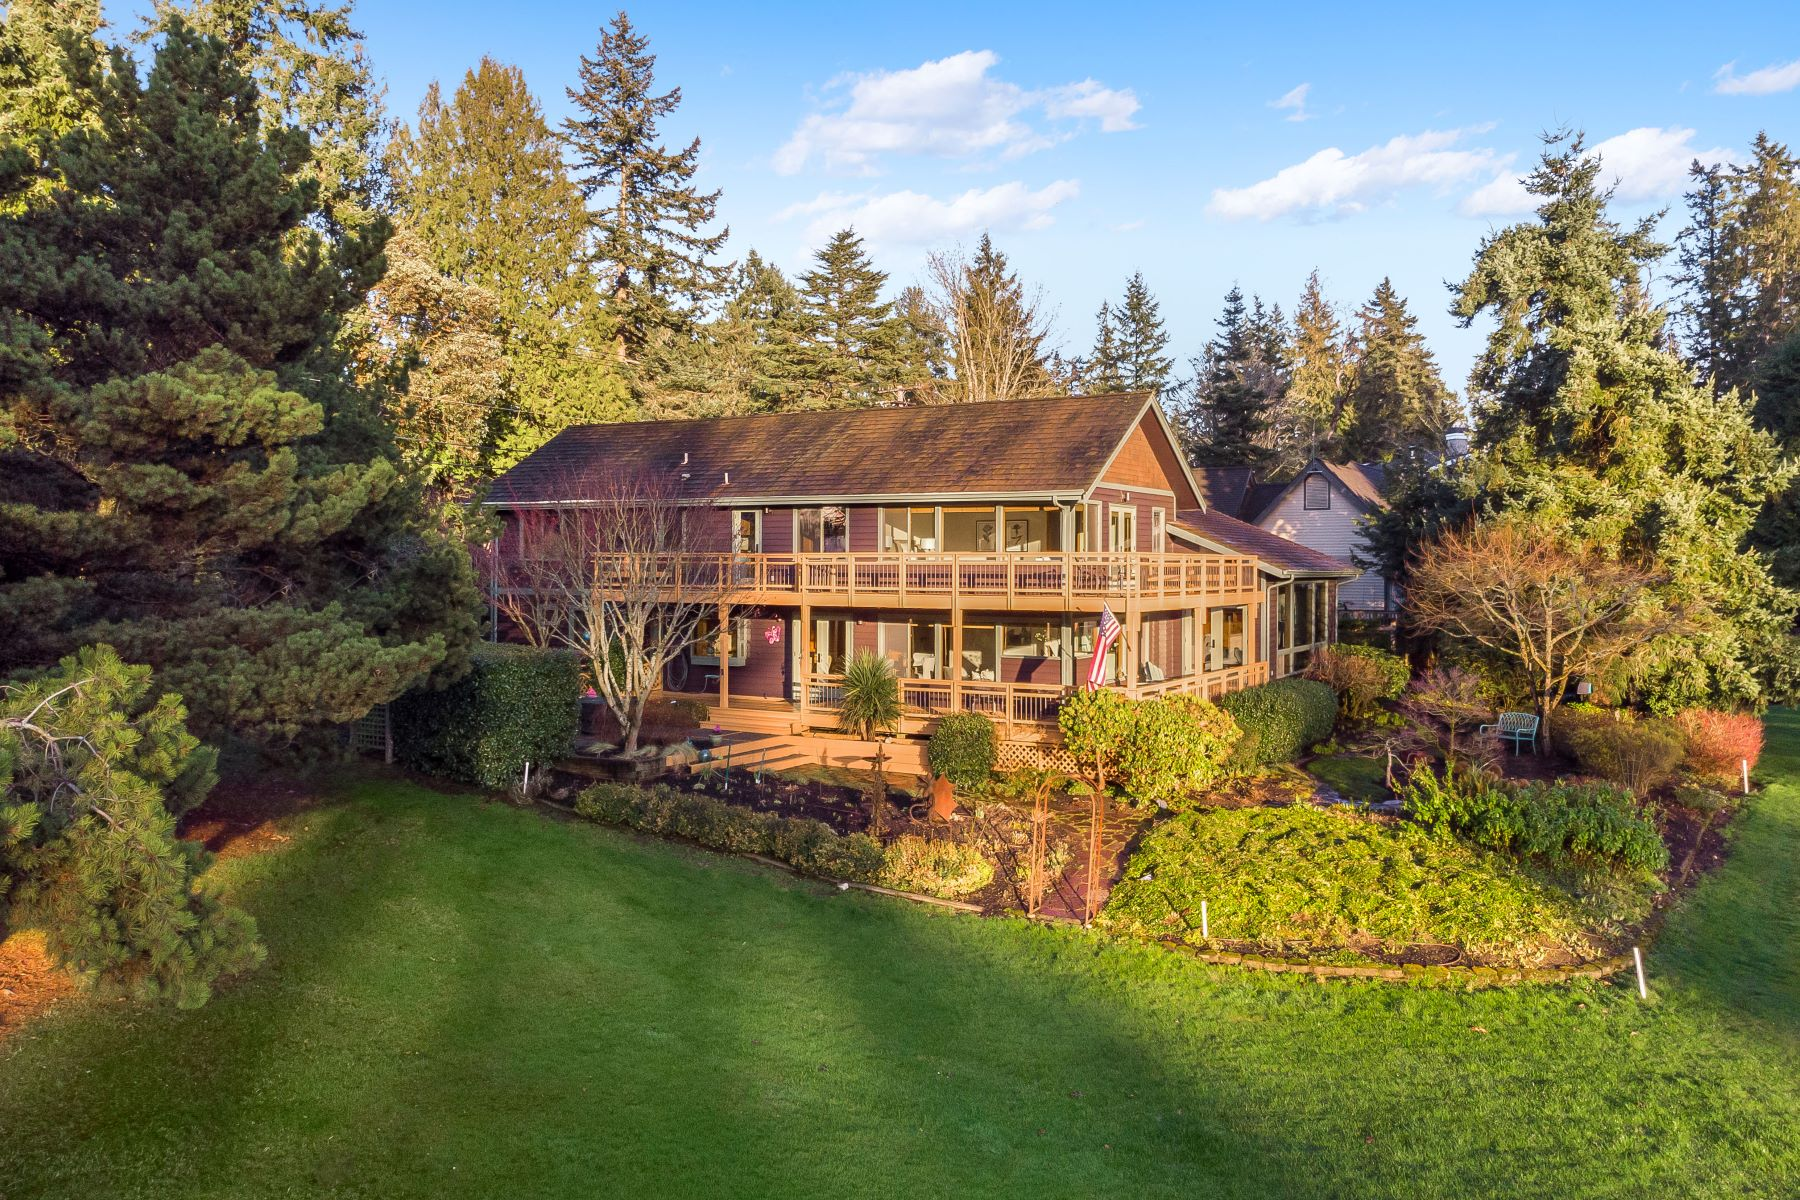 Single Family Homes for Sale at 11351 Northeast Wing Point Way, Bainbridge Island, WA 98110 11351 NE Wing Point Way Bainbridge Island, Washington 98110 United States